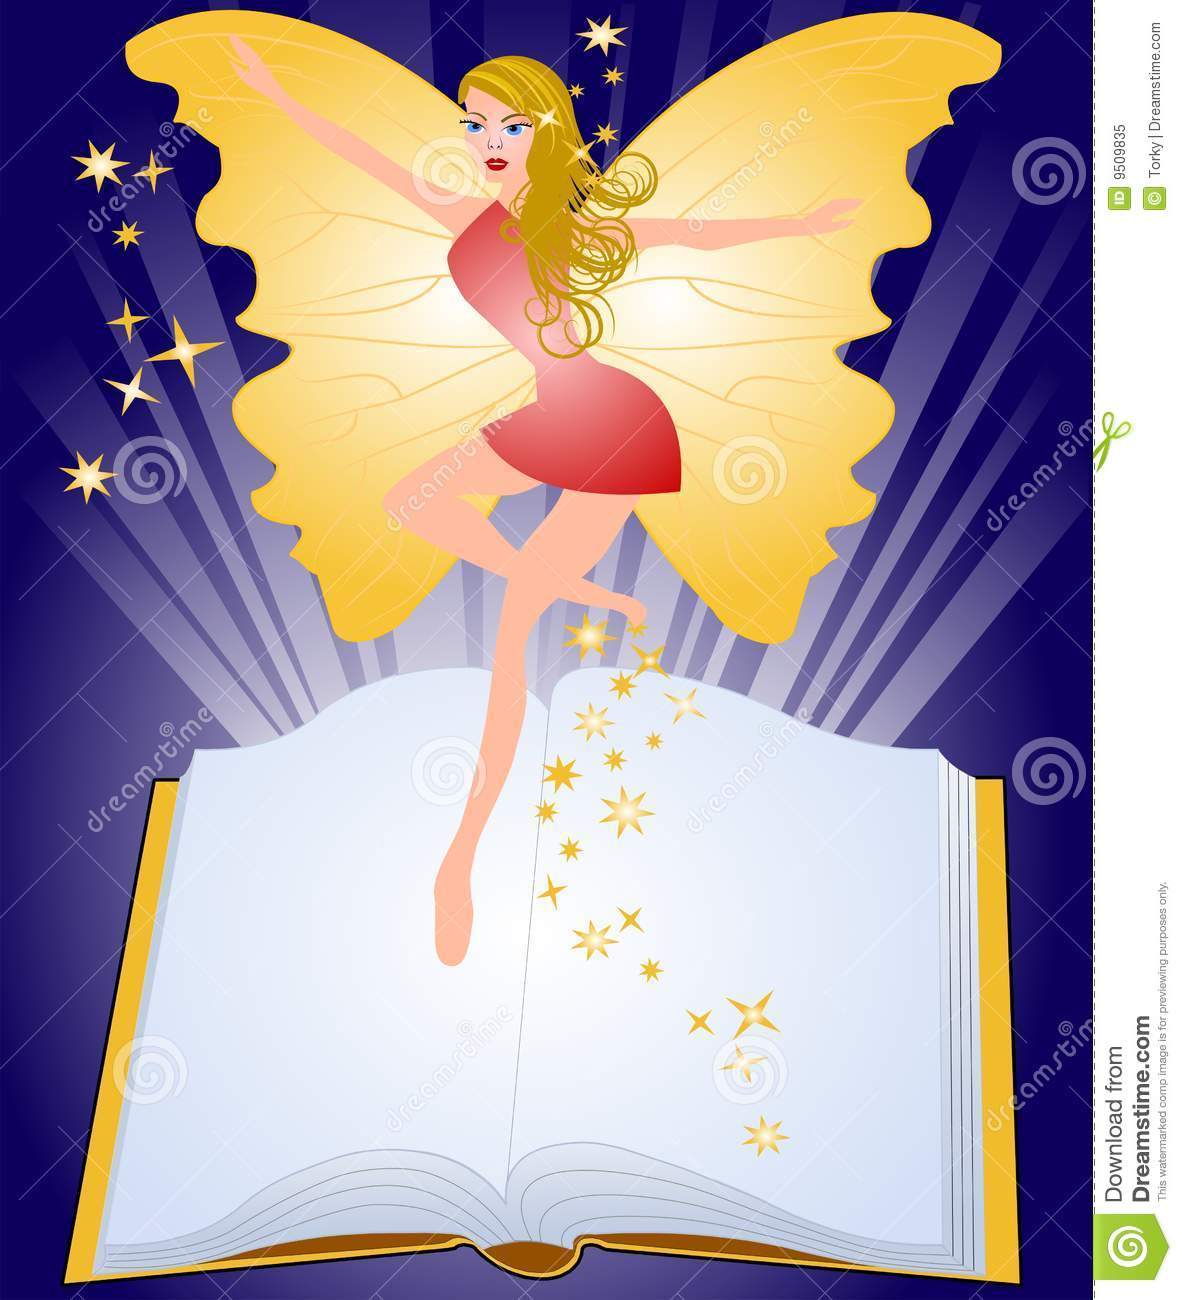 Blank fairy tale book cover royalty free stock photography for Fairy tale book cover template